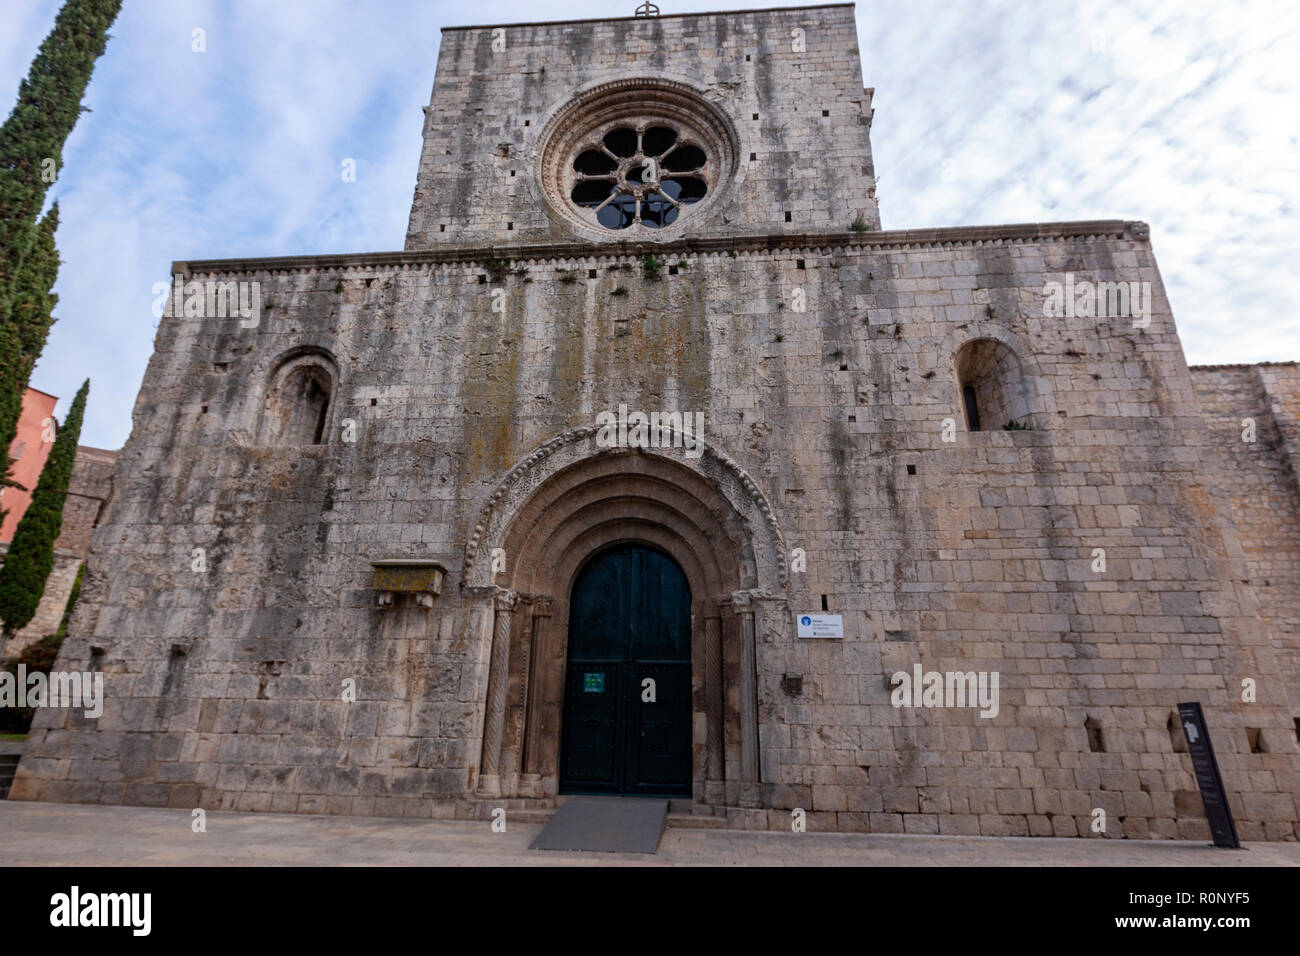 Facade with the Rosette and archaic cover of Sant Pere de Galligants, Romanesque church, Benedictine abbey , Girona, Catalonia, Spain - Stock Image